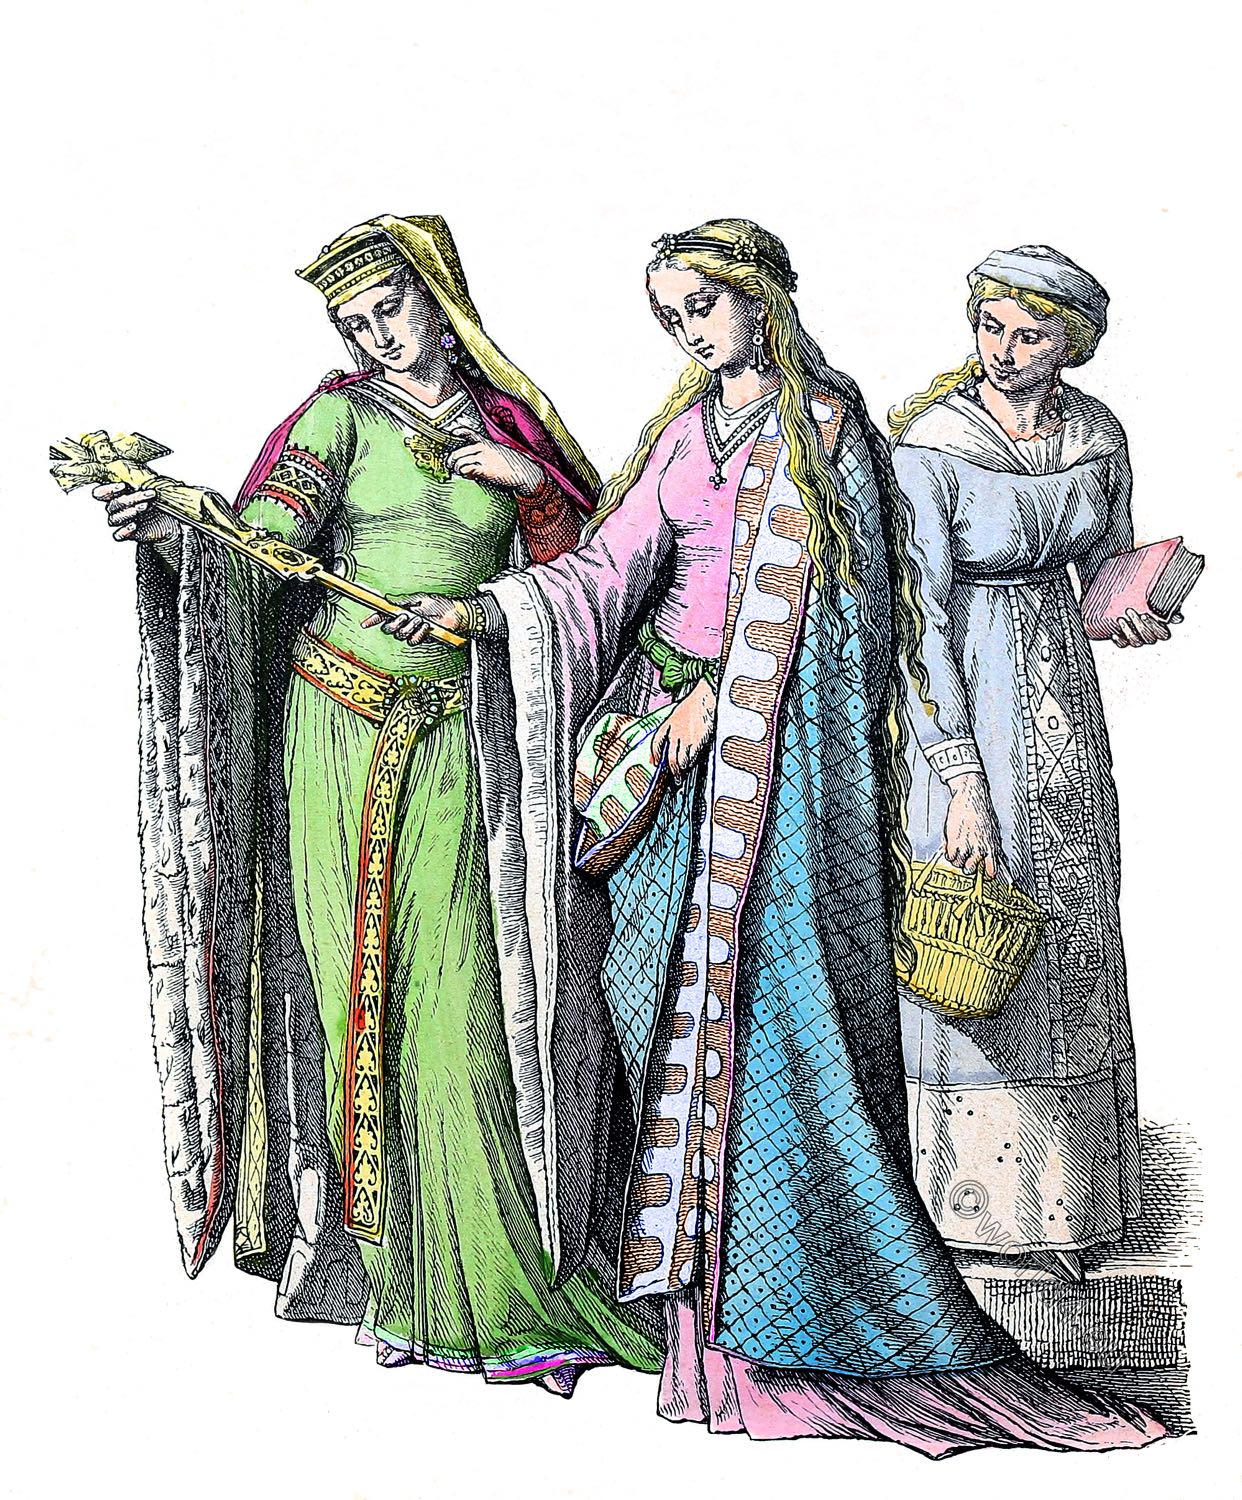 Middle Ages fashion history in Germany  | World4